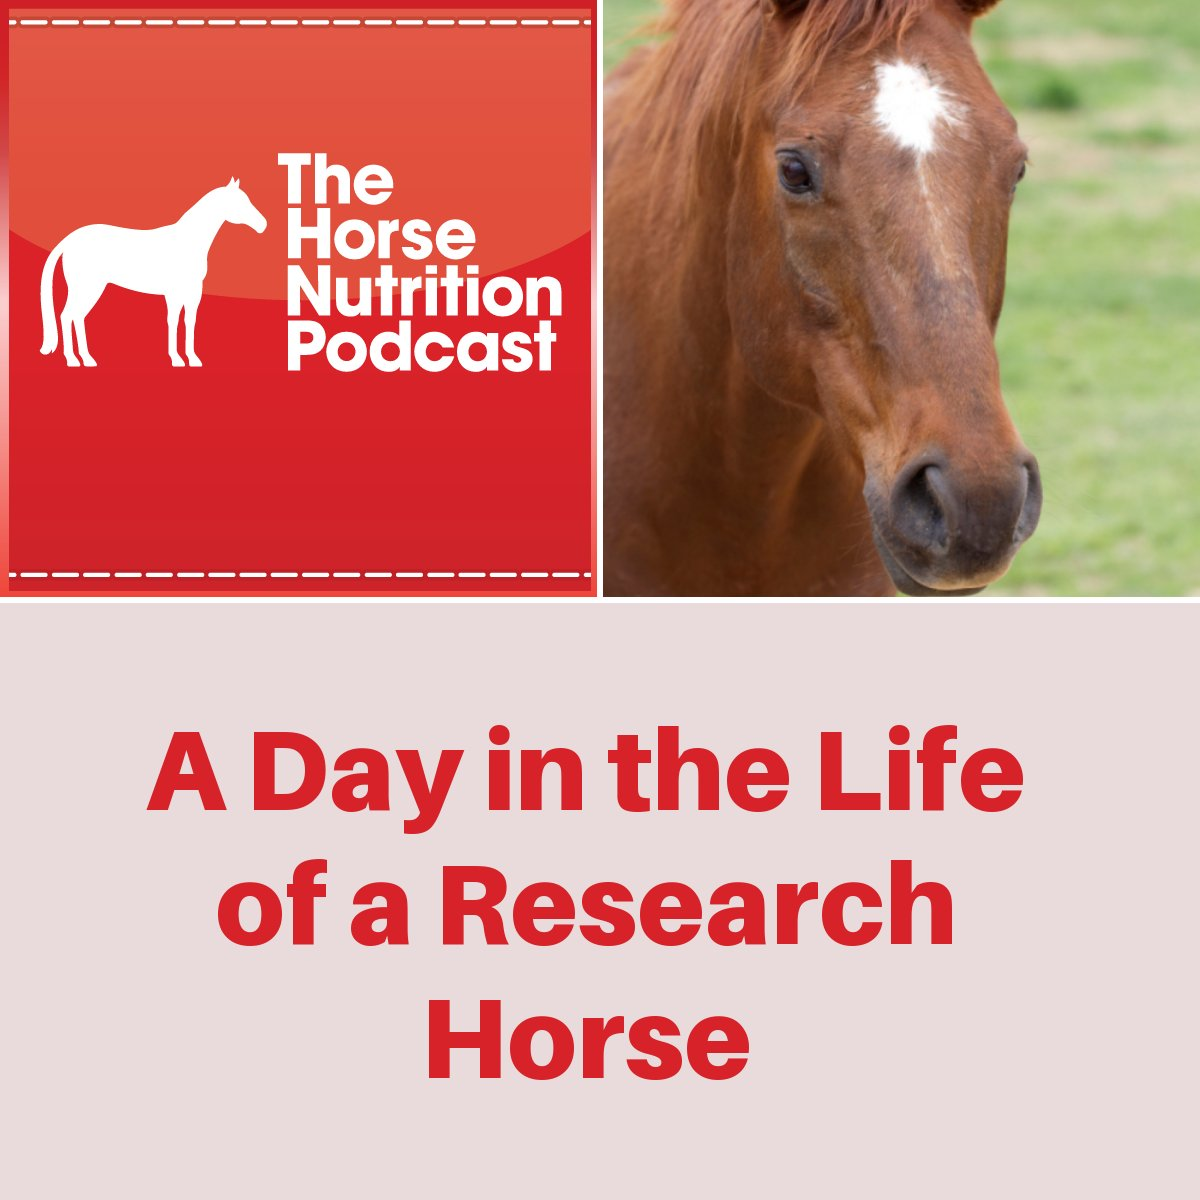 A Day in the Life of a Research Horse, The Horse Nutrition